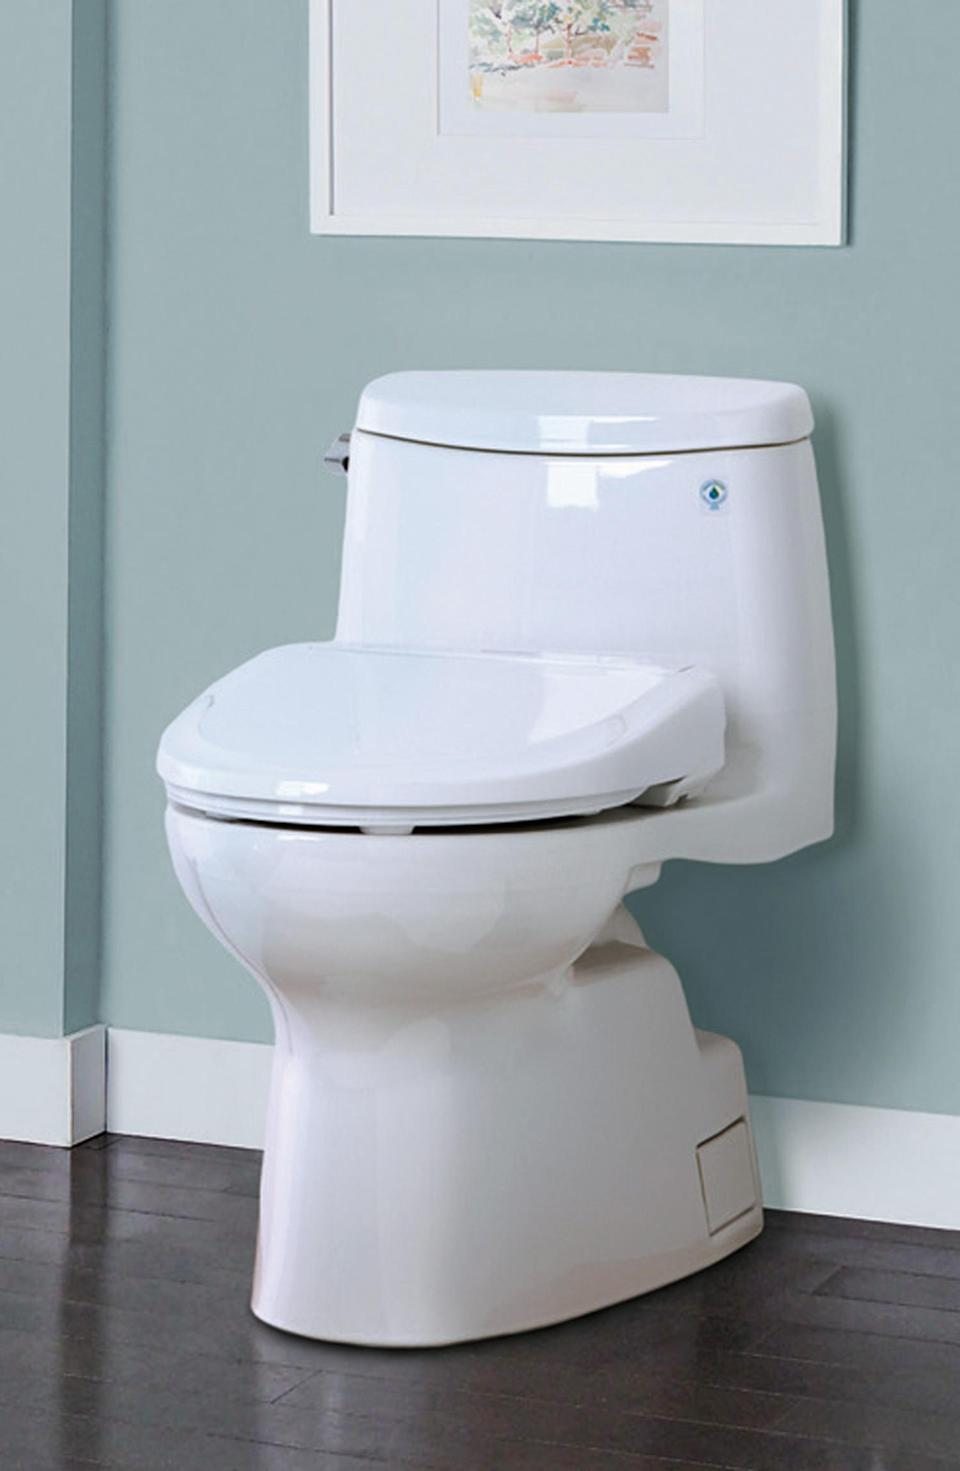 This photo provided by TOTO shows a Washlet S350 high tech toilet. The company began marketing the Washlet in Japan in 1980. Now 74 percent of Japanese households have toilets of the high-tech persuasion, making them more common there than home computers. (AP Photo/TOTO)